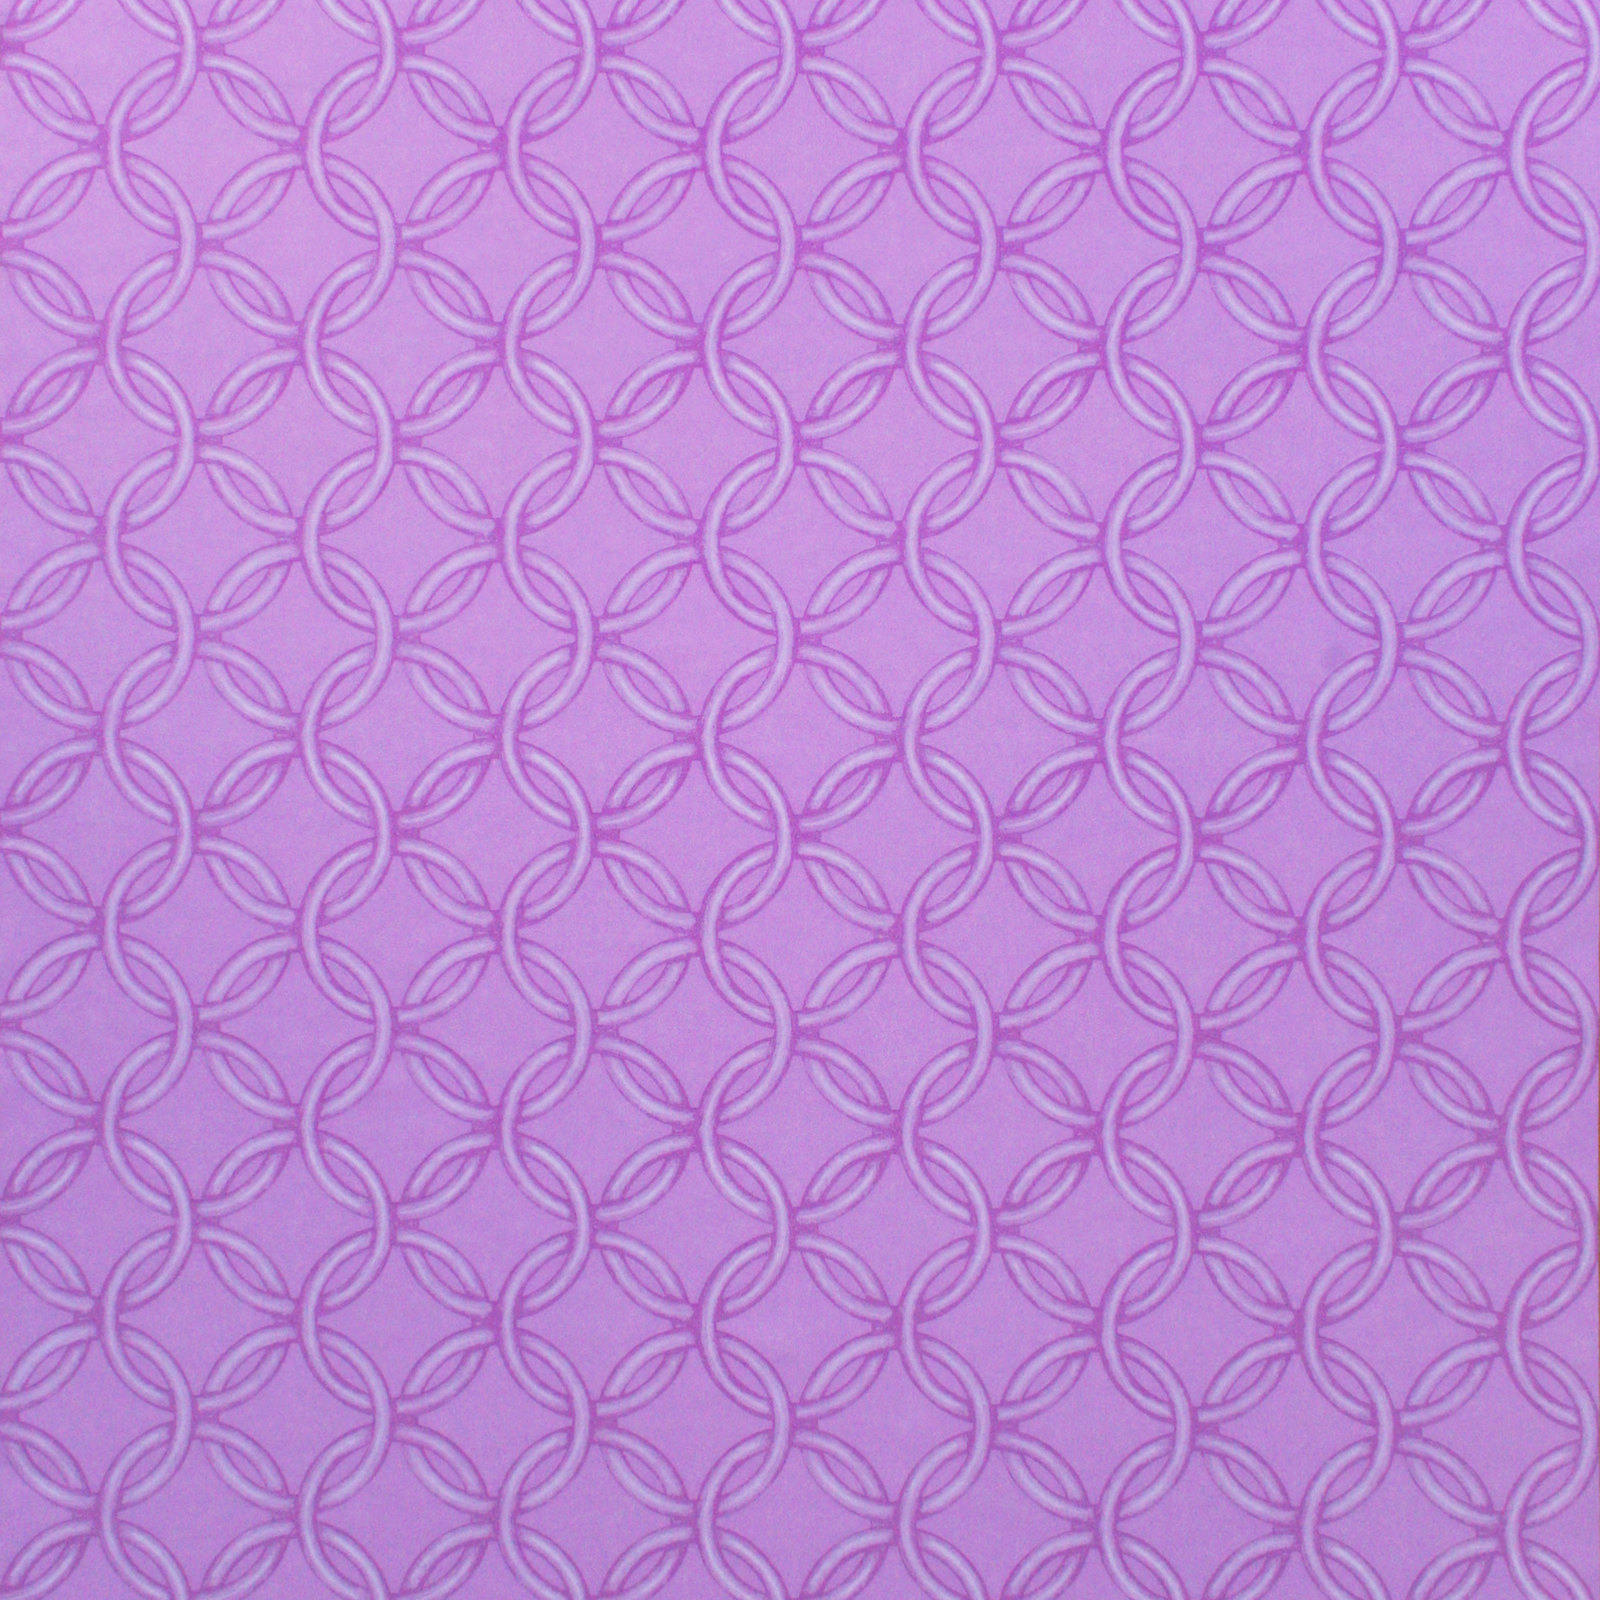 Tapetti Inspired Circle 1220545 0,53x10,05 m violetti non-woven